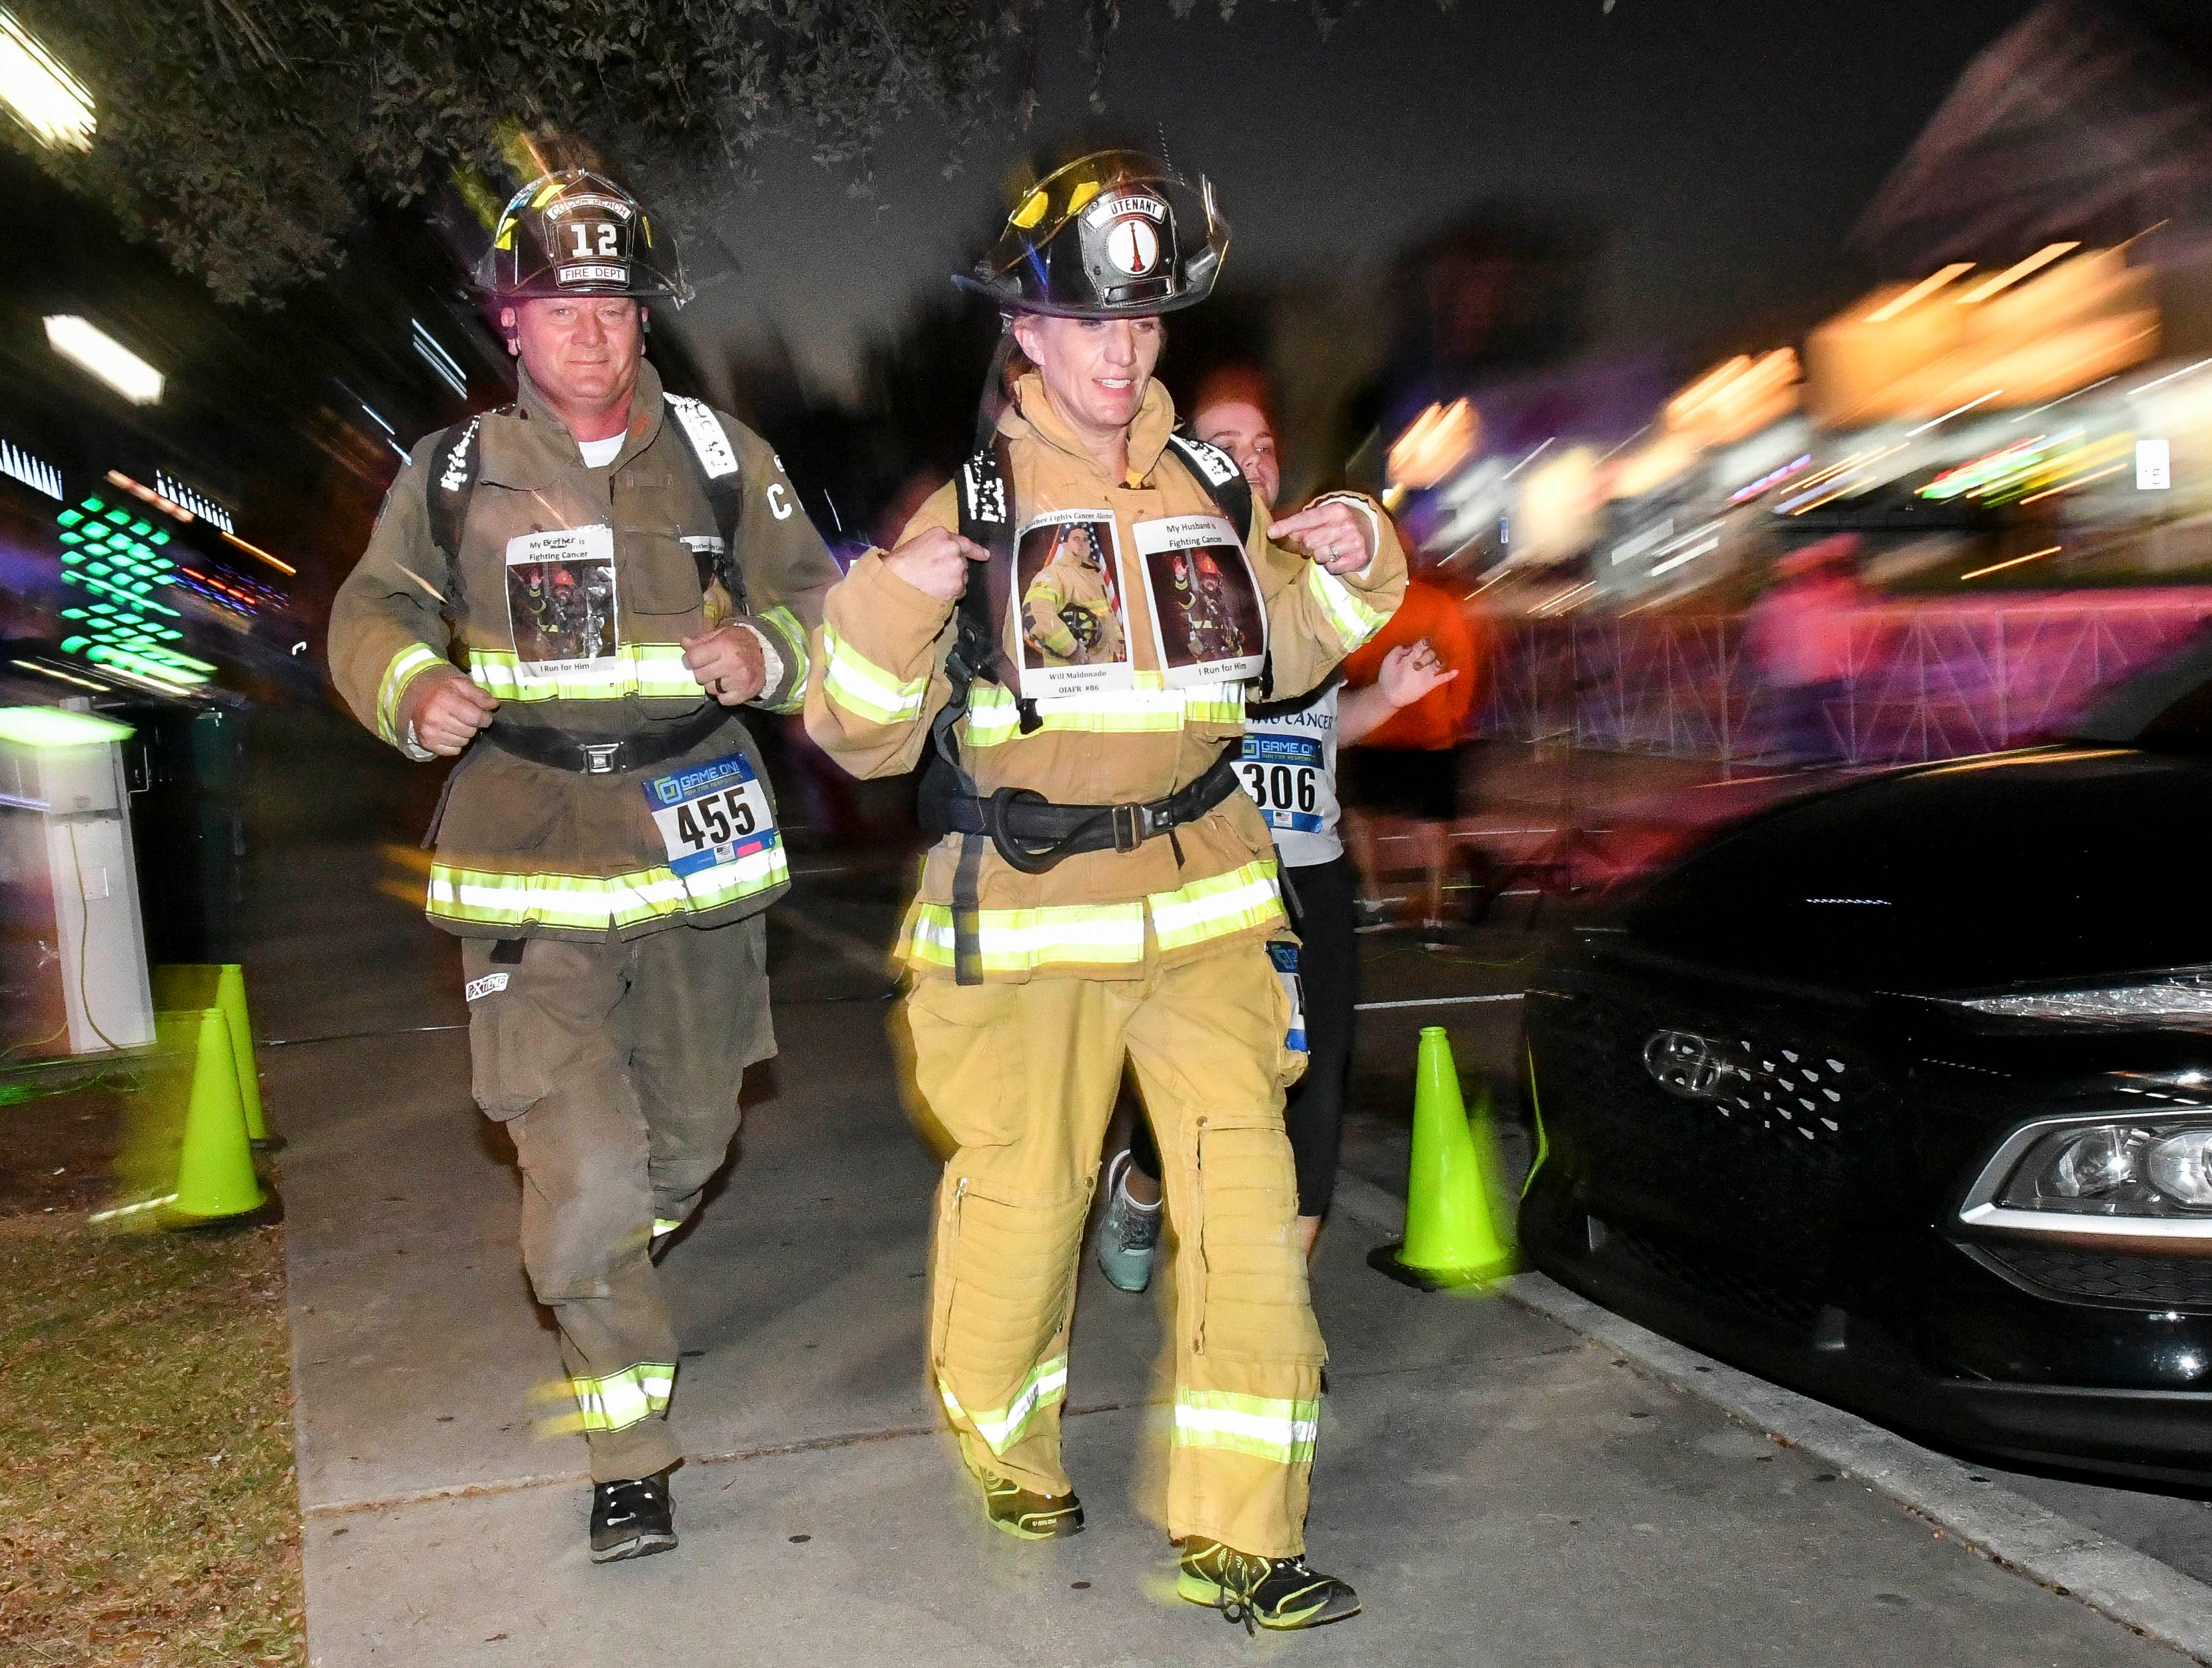 First responders in full gear run the course in the inaugural Game On Run for Responders 5K Run/Walk run through the streets of Cocoa Village Saturday.  Proceeds from the event benefit Survive First, a nonprofit that aids responders and family members suffering with mental health issues.